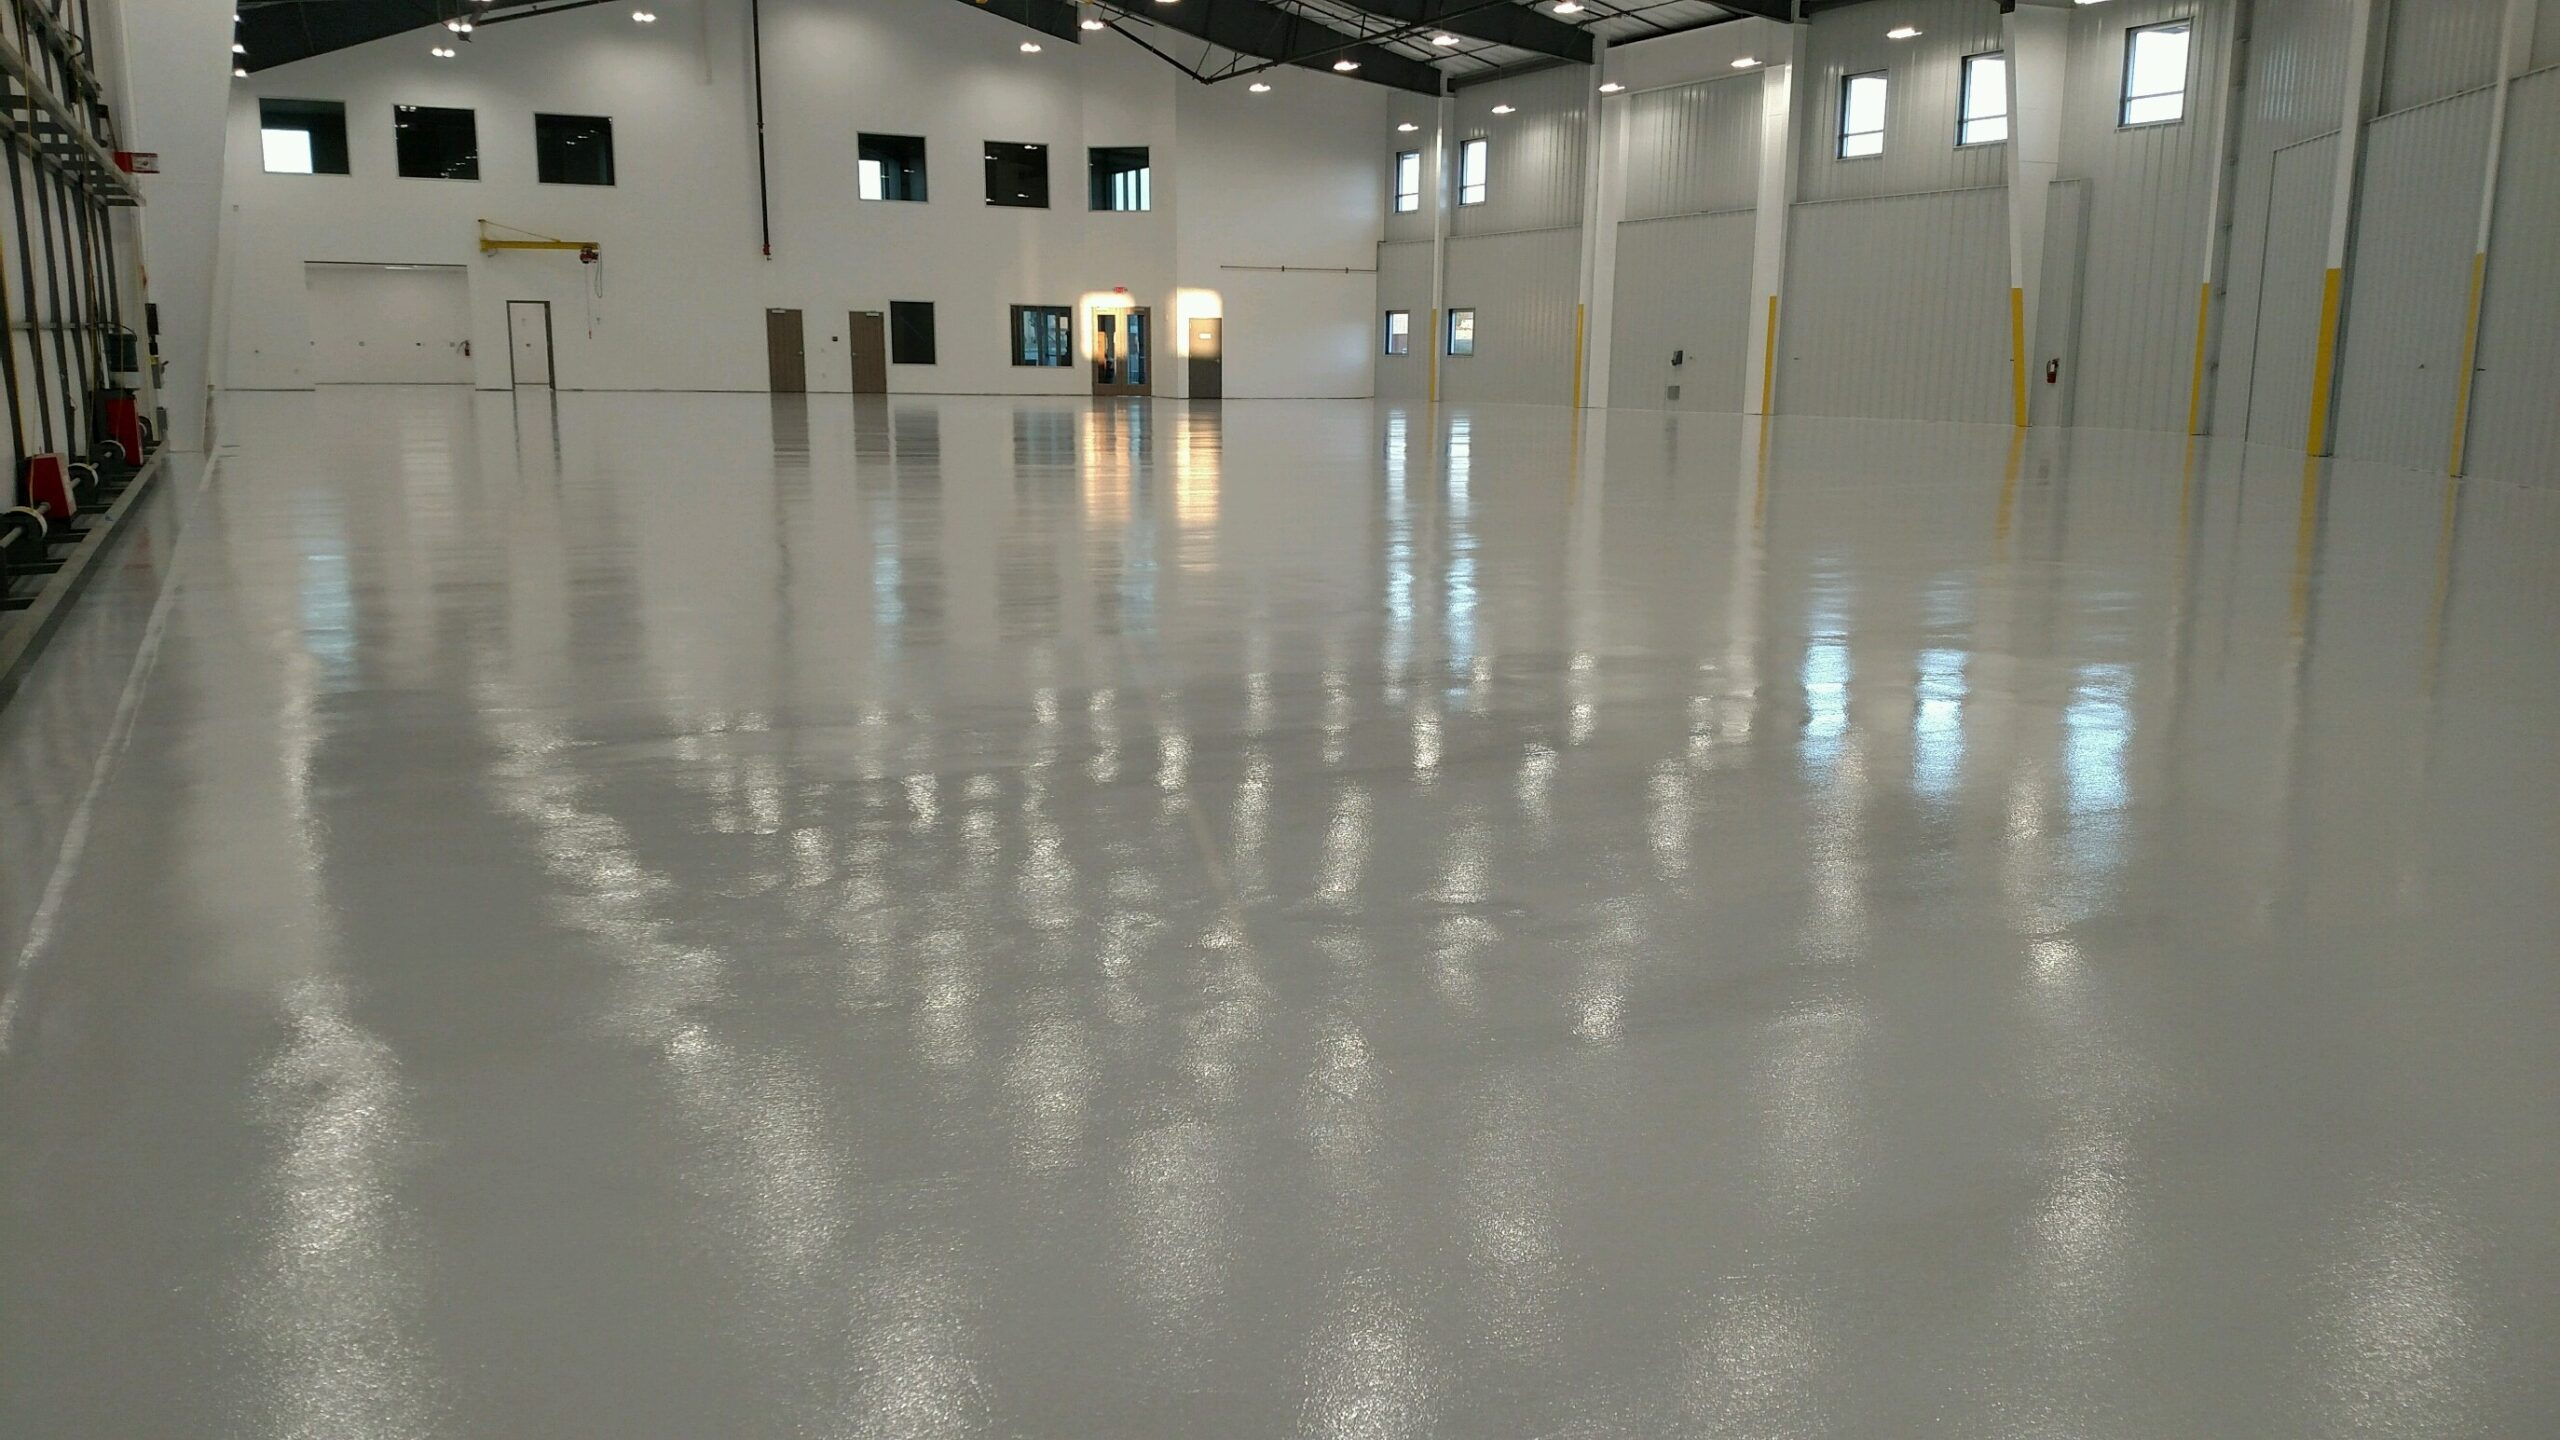 An airplane hangar that has epoxy applied to it during a heat wave.